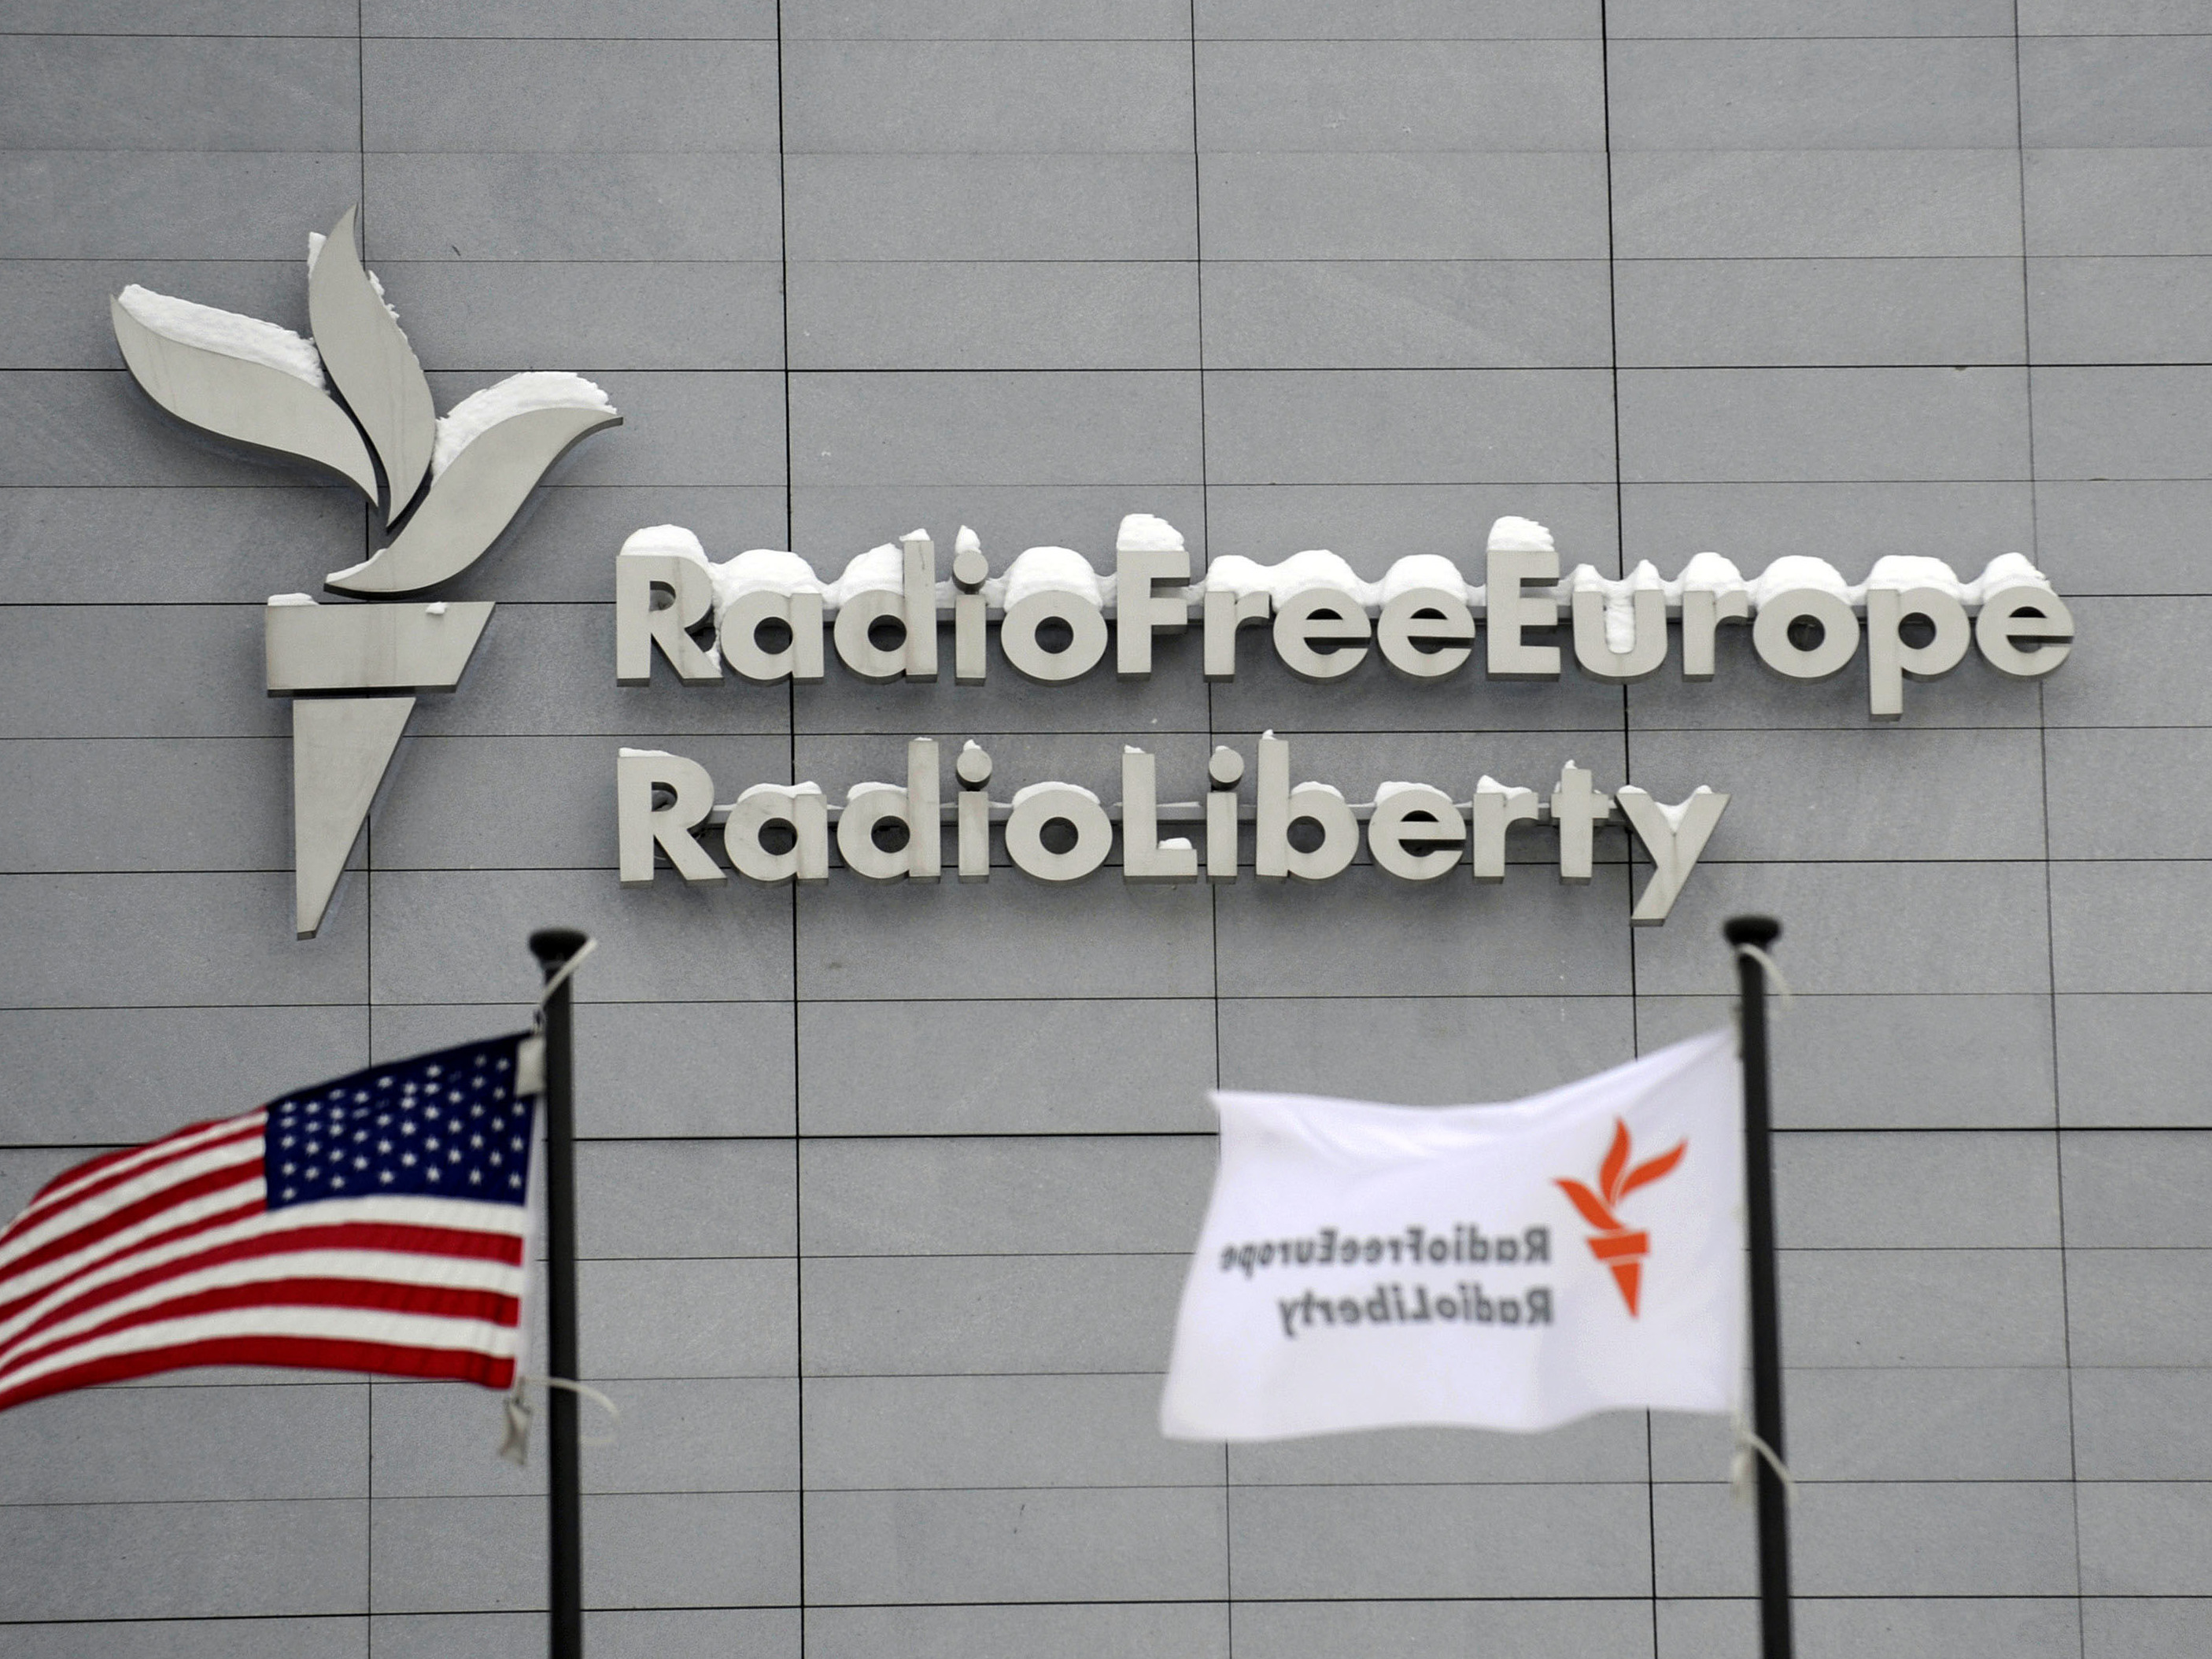 USAGM Chief Fires Trump Allies Over Radio Free Europe And Other Networks